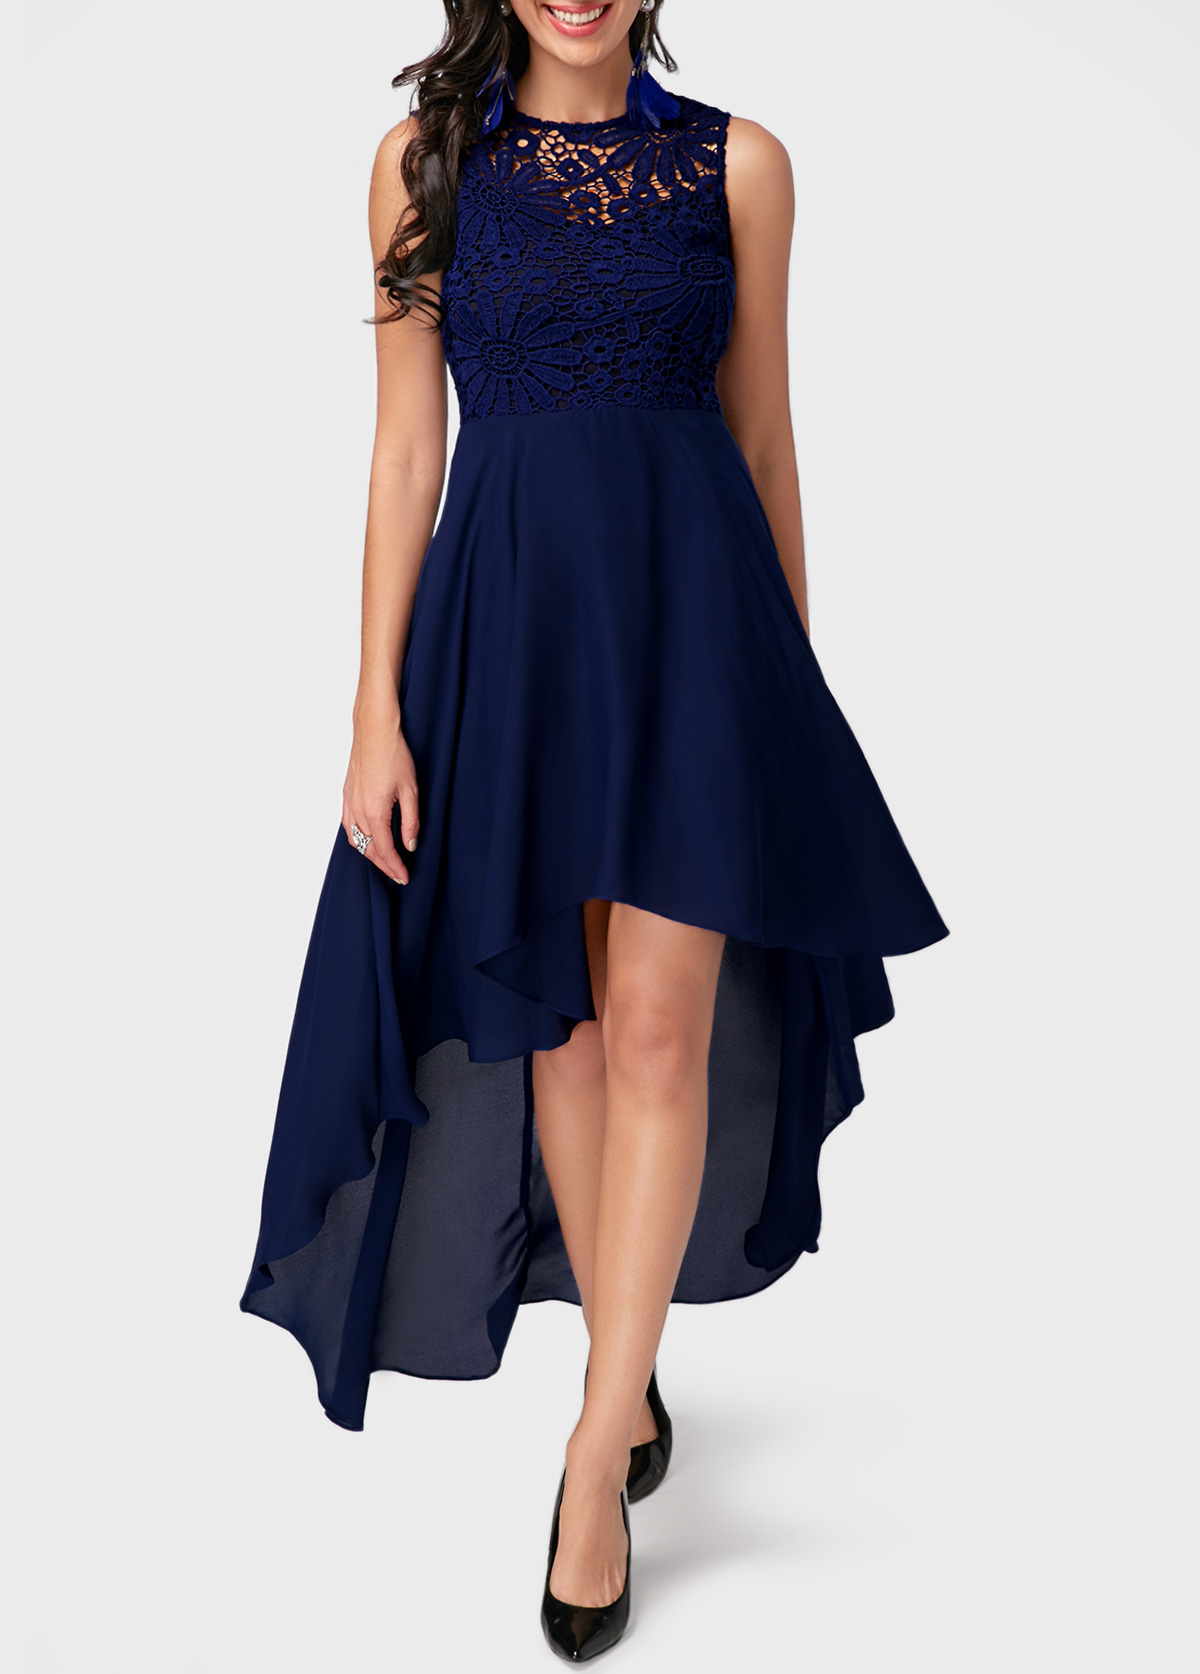 High Low Lace Panel Navy Blue Chiffon Dress